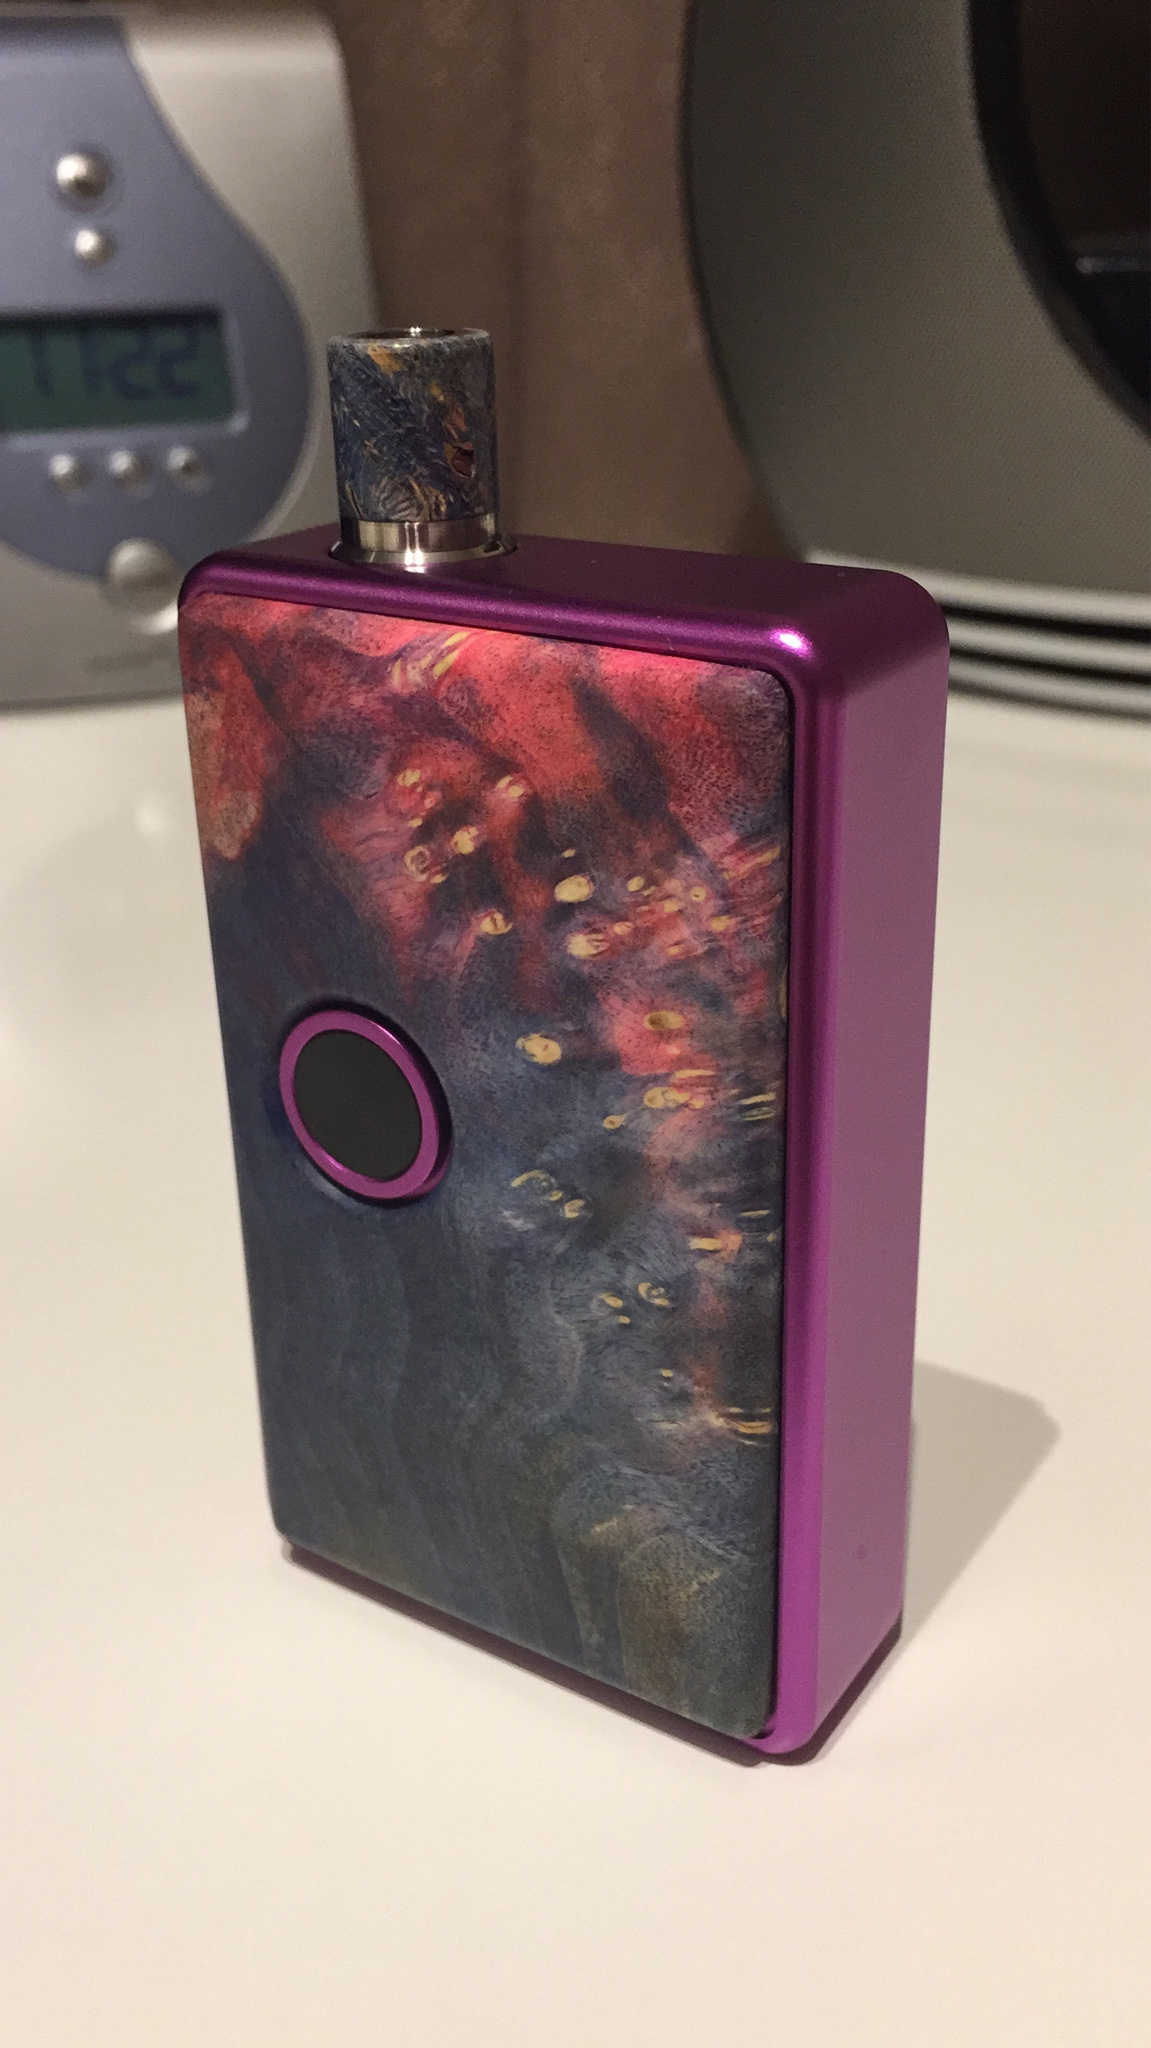 Sxk billet box with wood doors | ALL ABOUT E-CIGARETTES UK